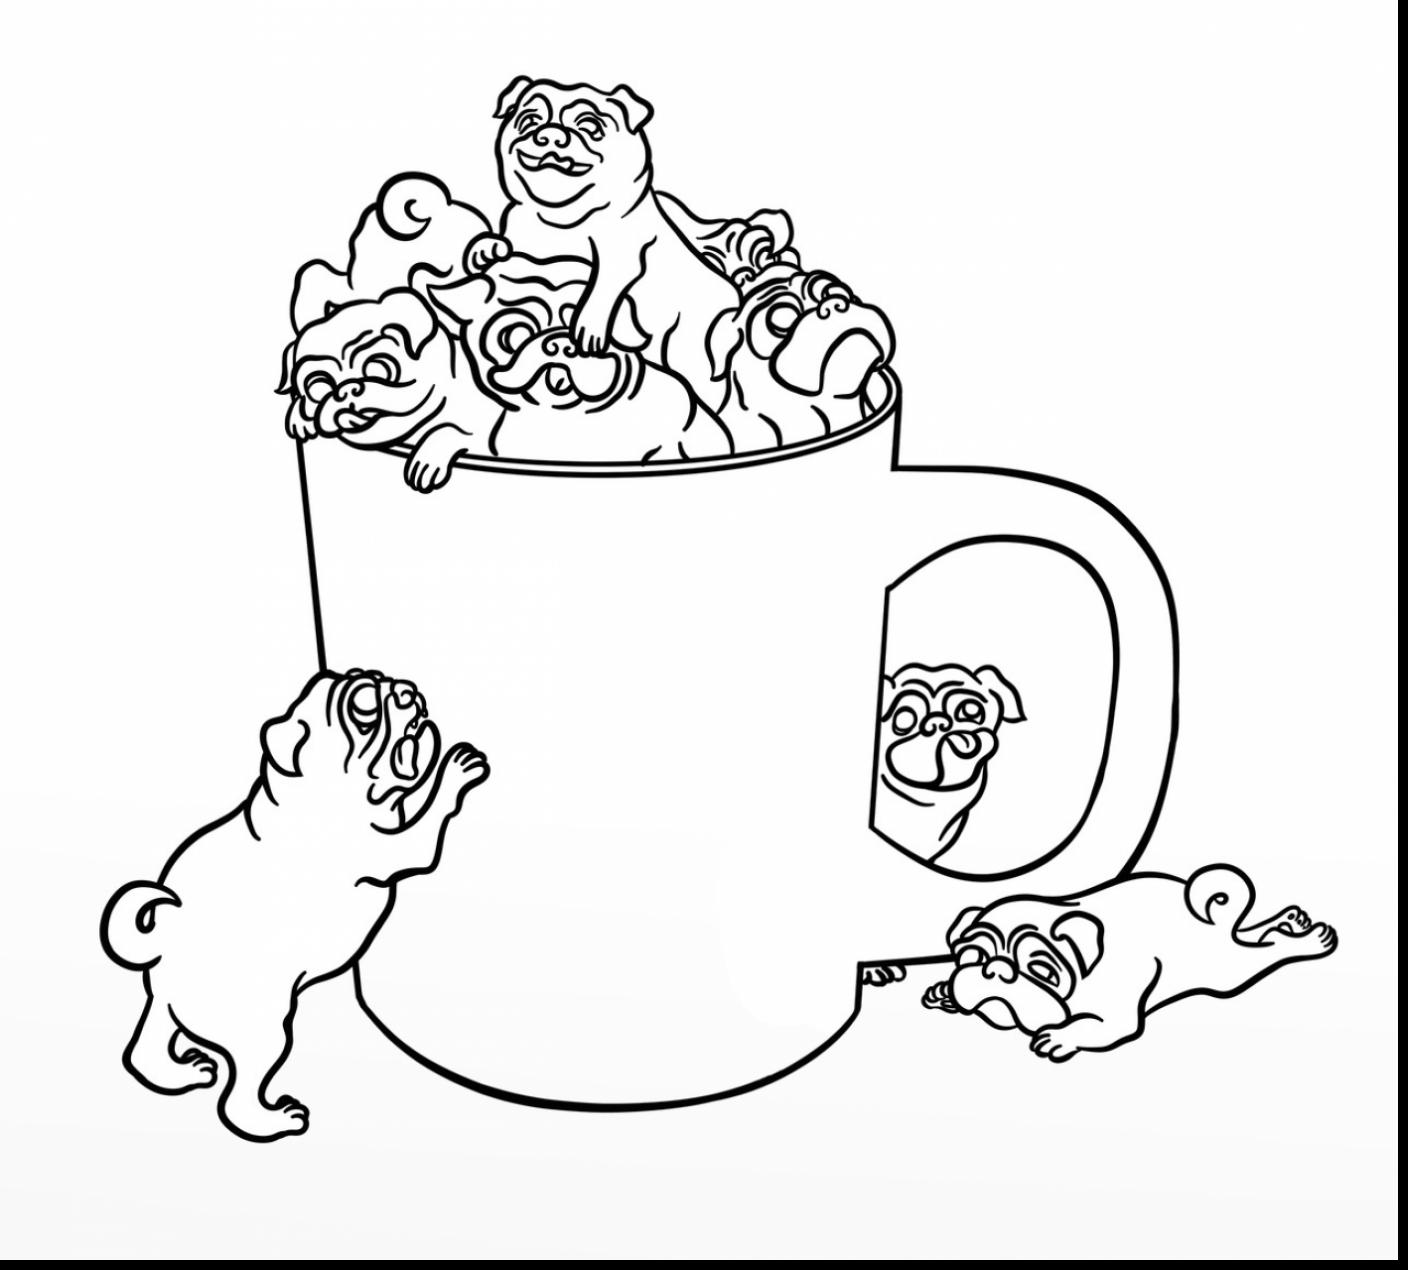 Impressive Pug Printa Add Photo Gallery Pug Coloring Pages At